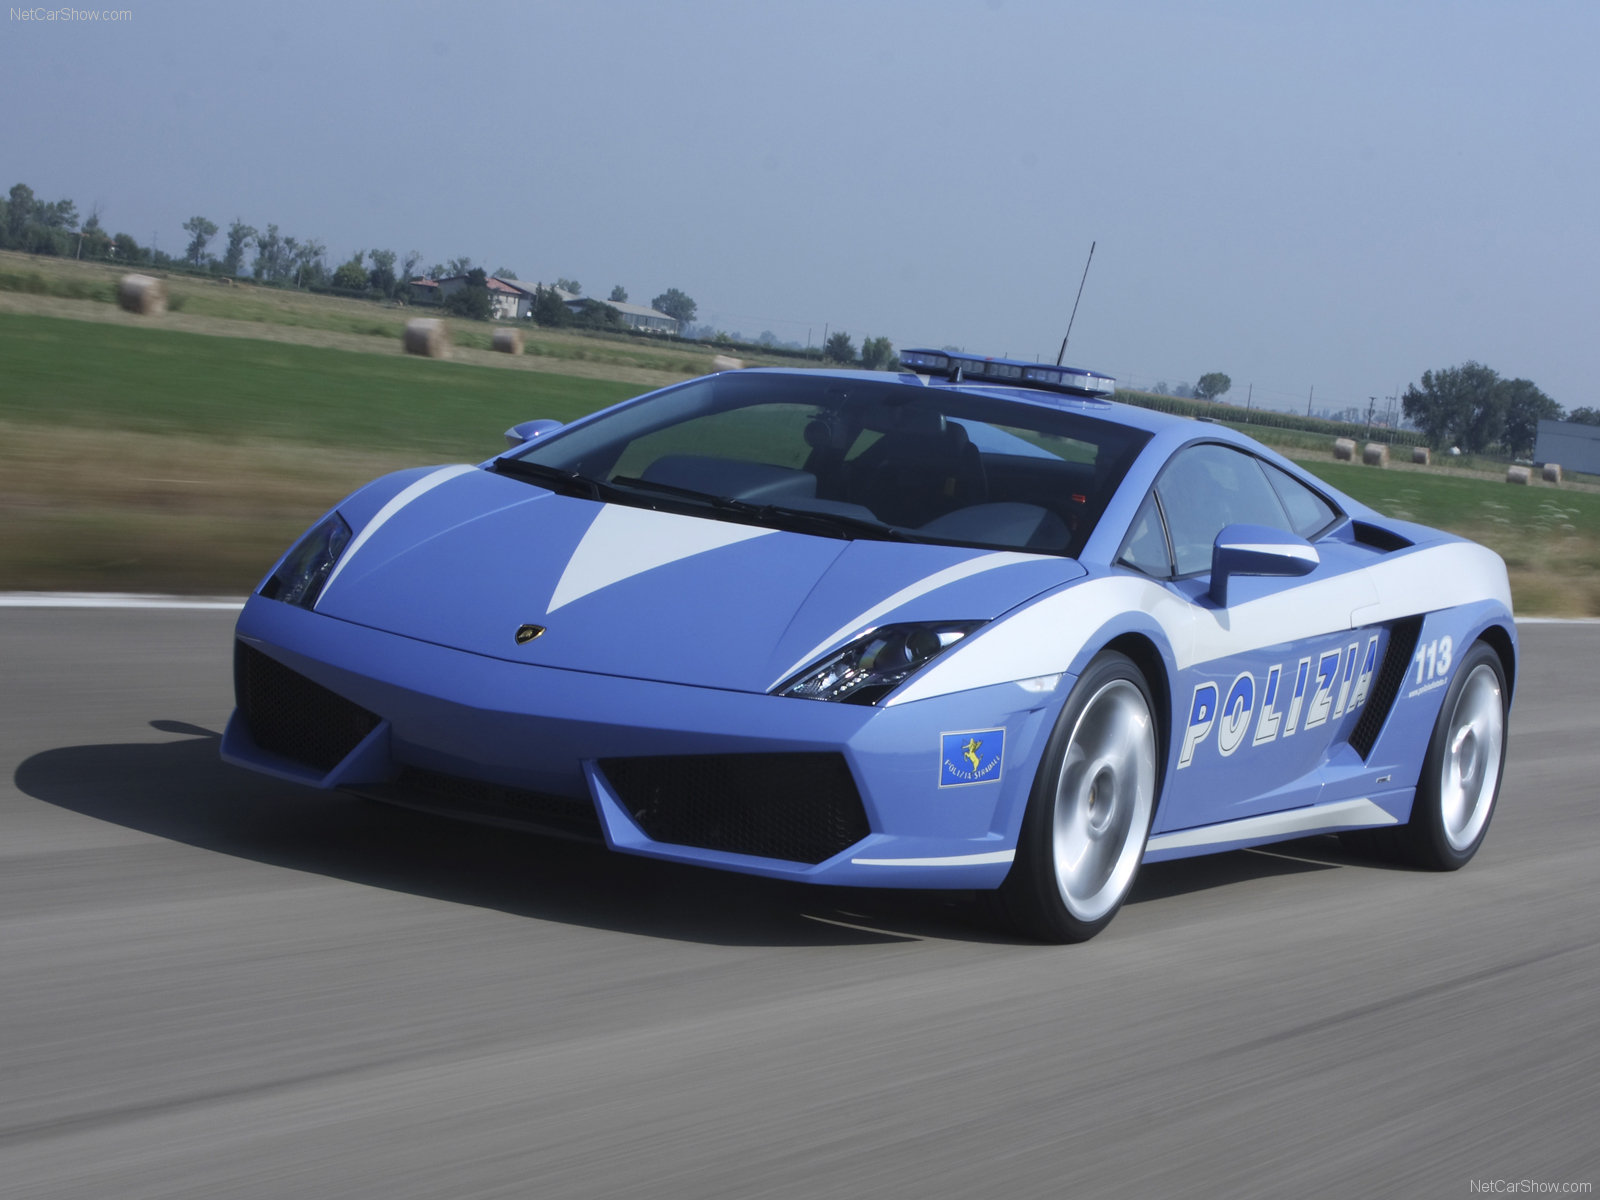 Lamborghini background image Gallardo wallpapers 1600x1200